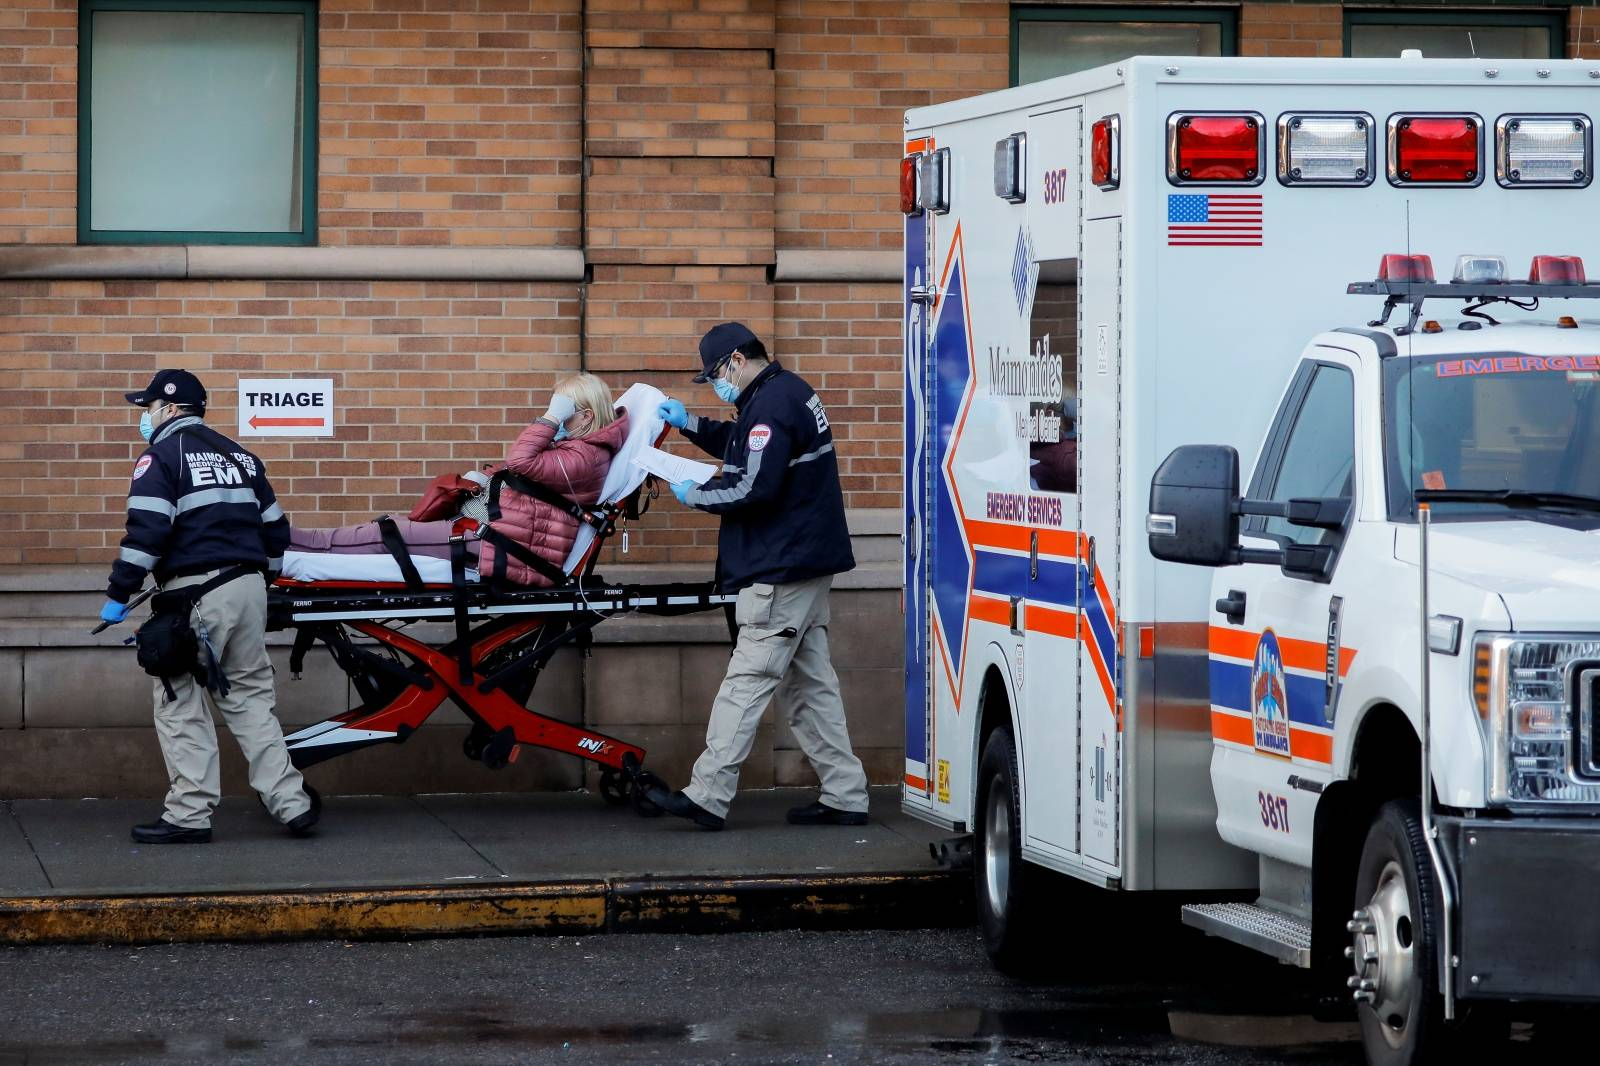 Paramedics take a patient in to an emergency center at Maimonides Medical Center during the outbreak of the coronavirus disease (COVID-19) in the Brooklyn, New York